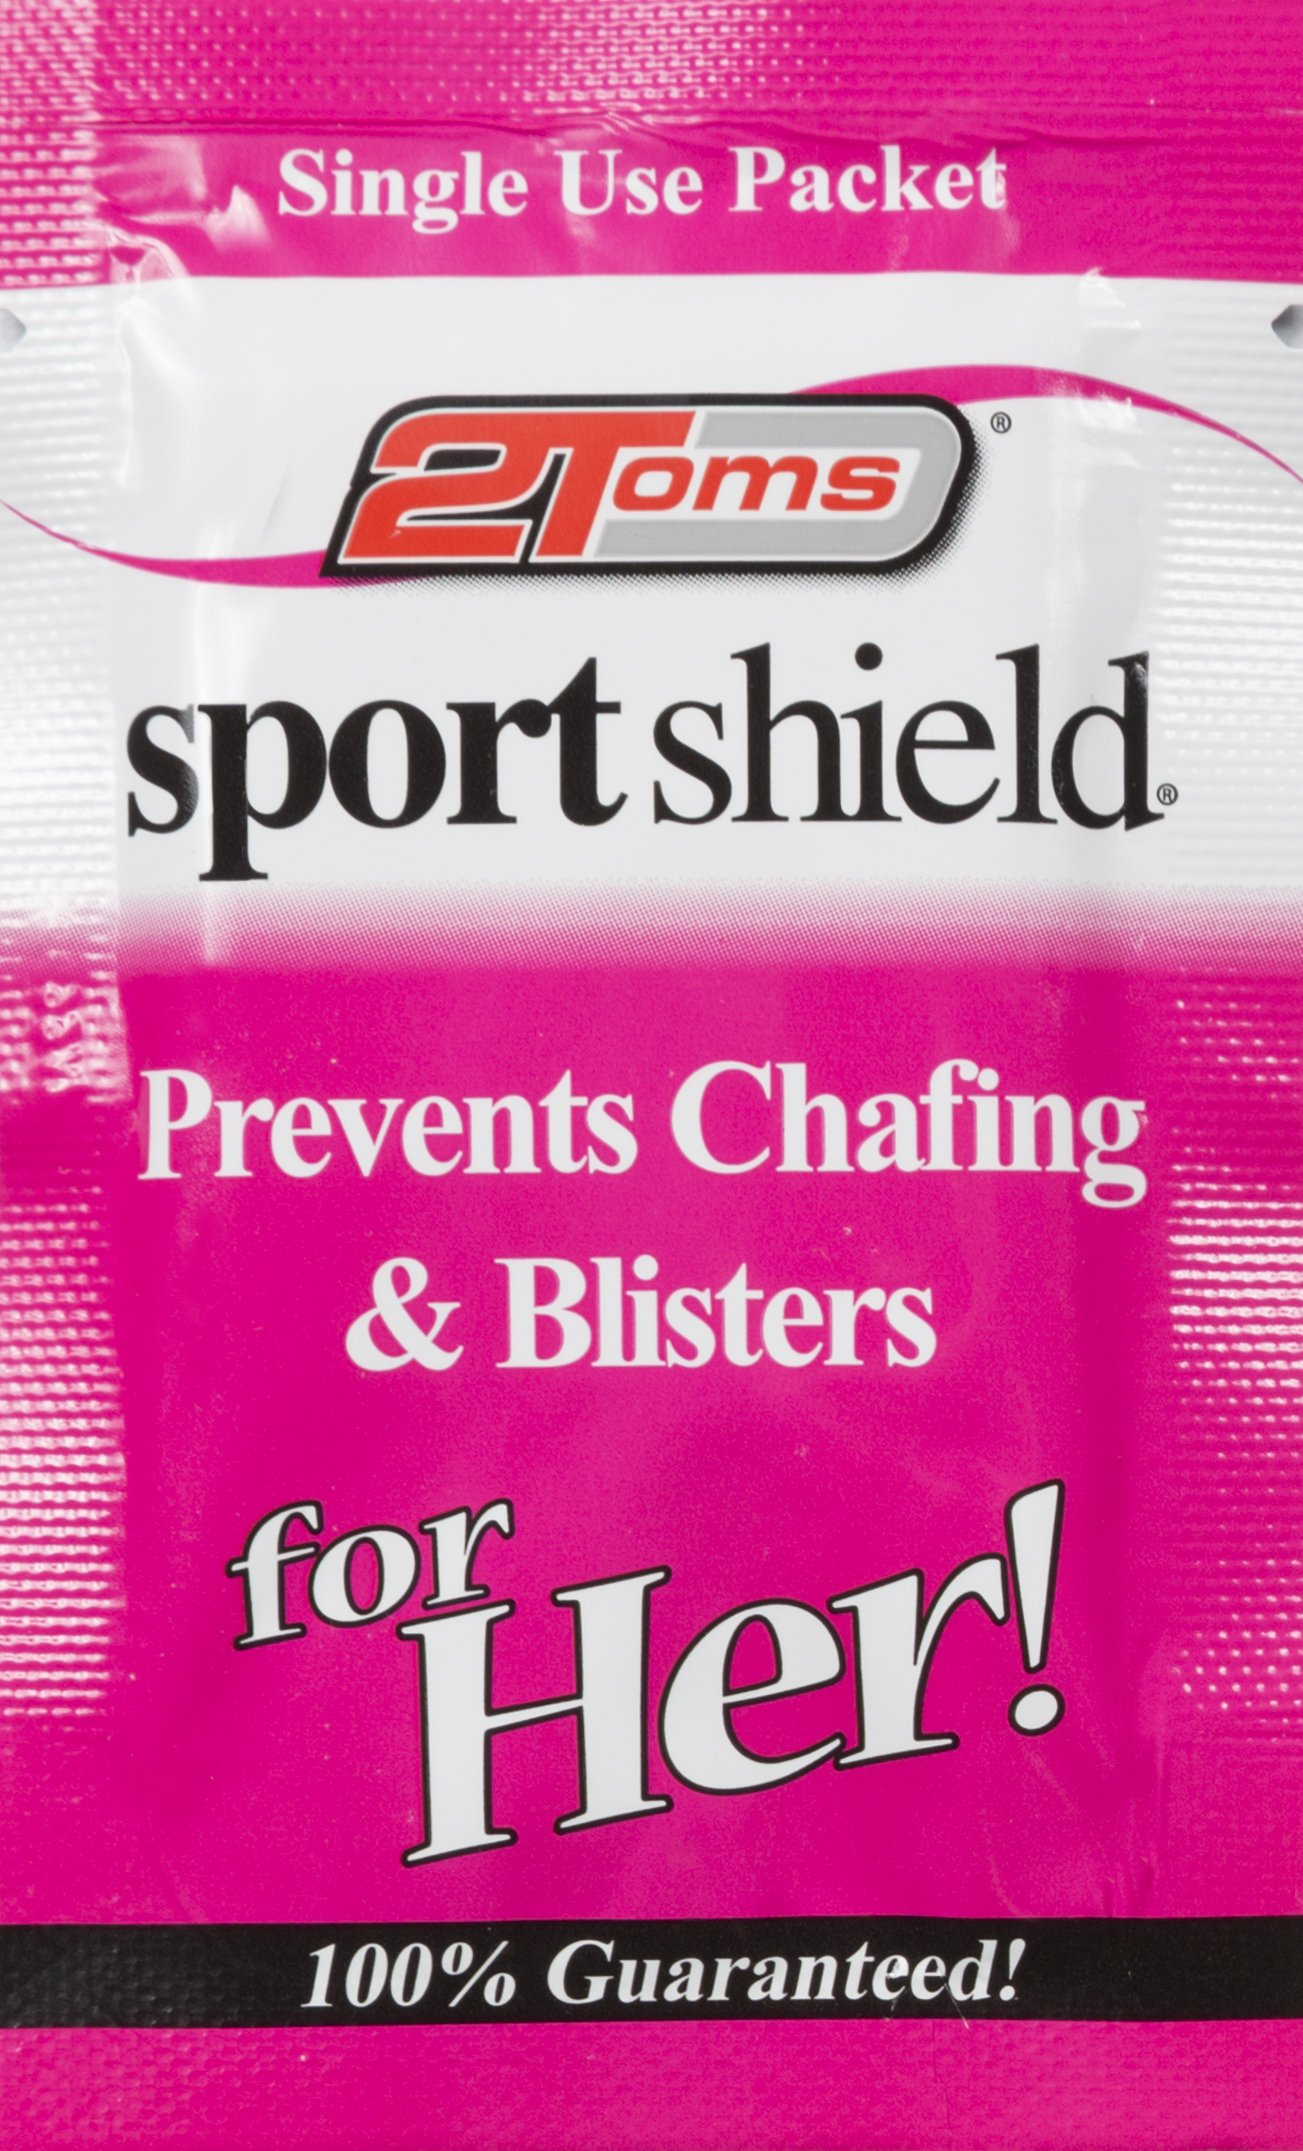 2Toms SportShield for Her Chafing and Blisters Prevention Single Use Pack (10-Towelettes)